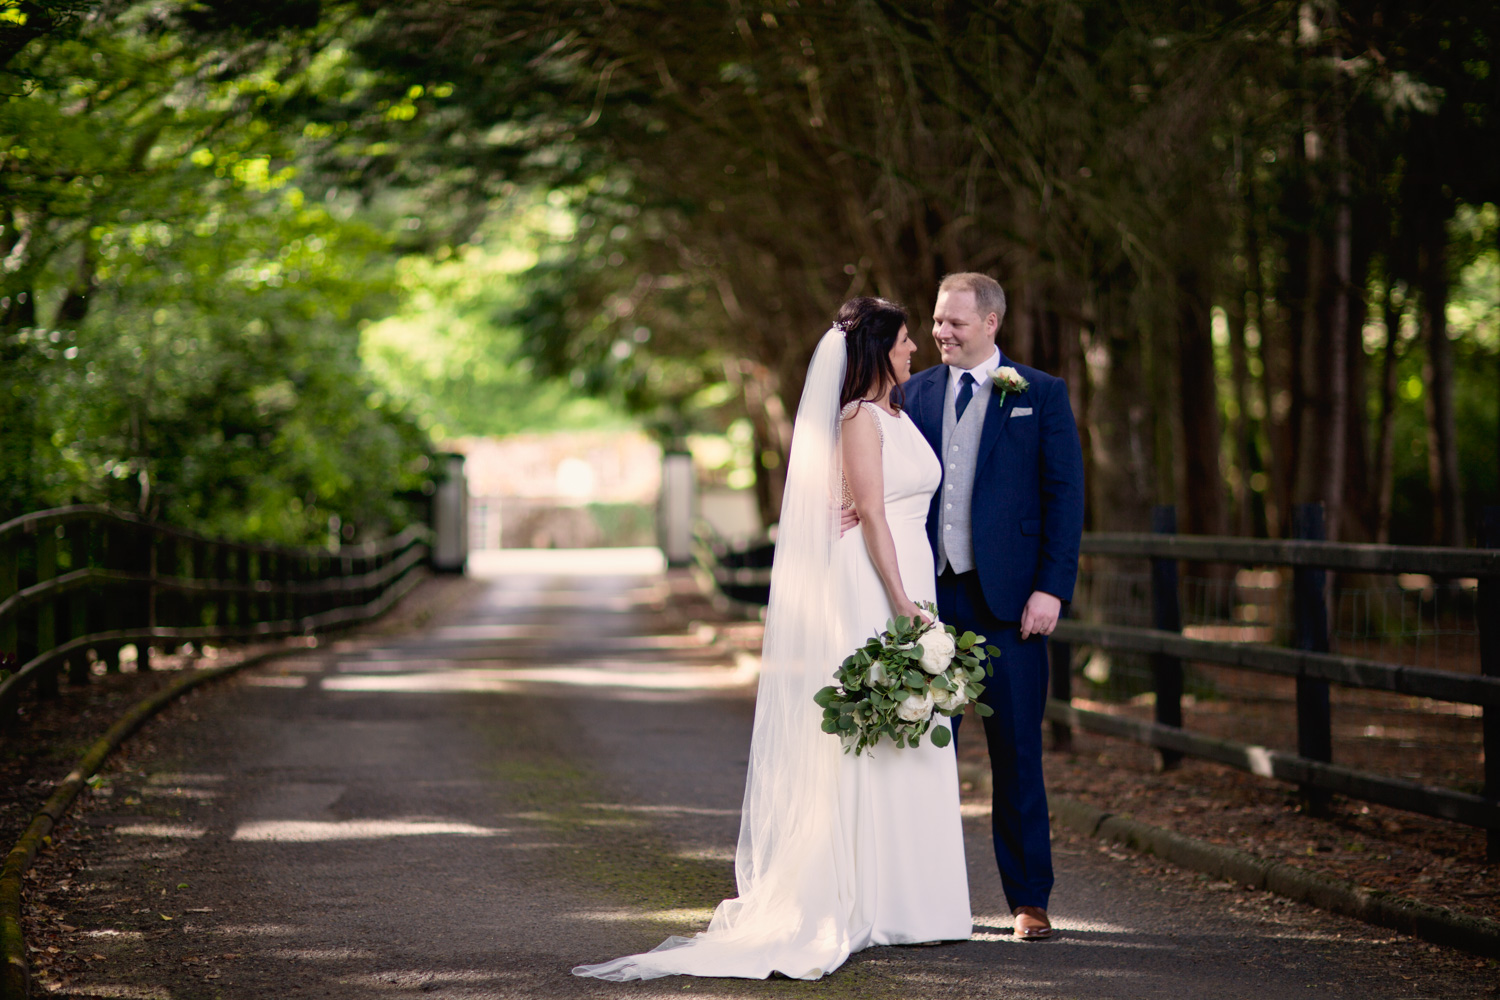 Mark_Barnes_Northern_Ireland_wedding_photographer_Kilmore_House_Wedding_photography_Kilmore_House_wedding_photographer-51.jpg